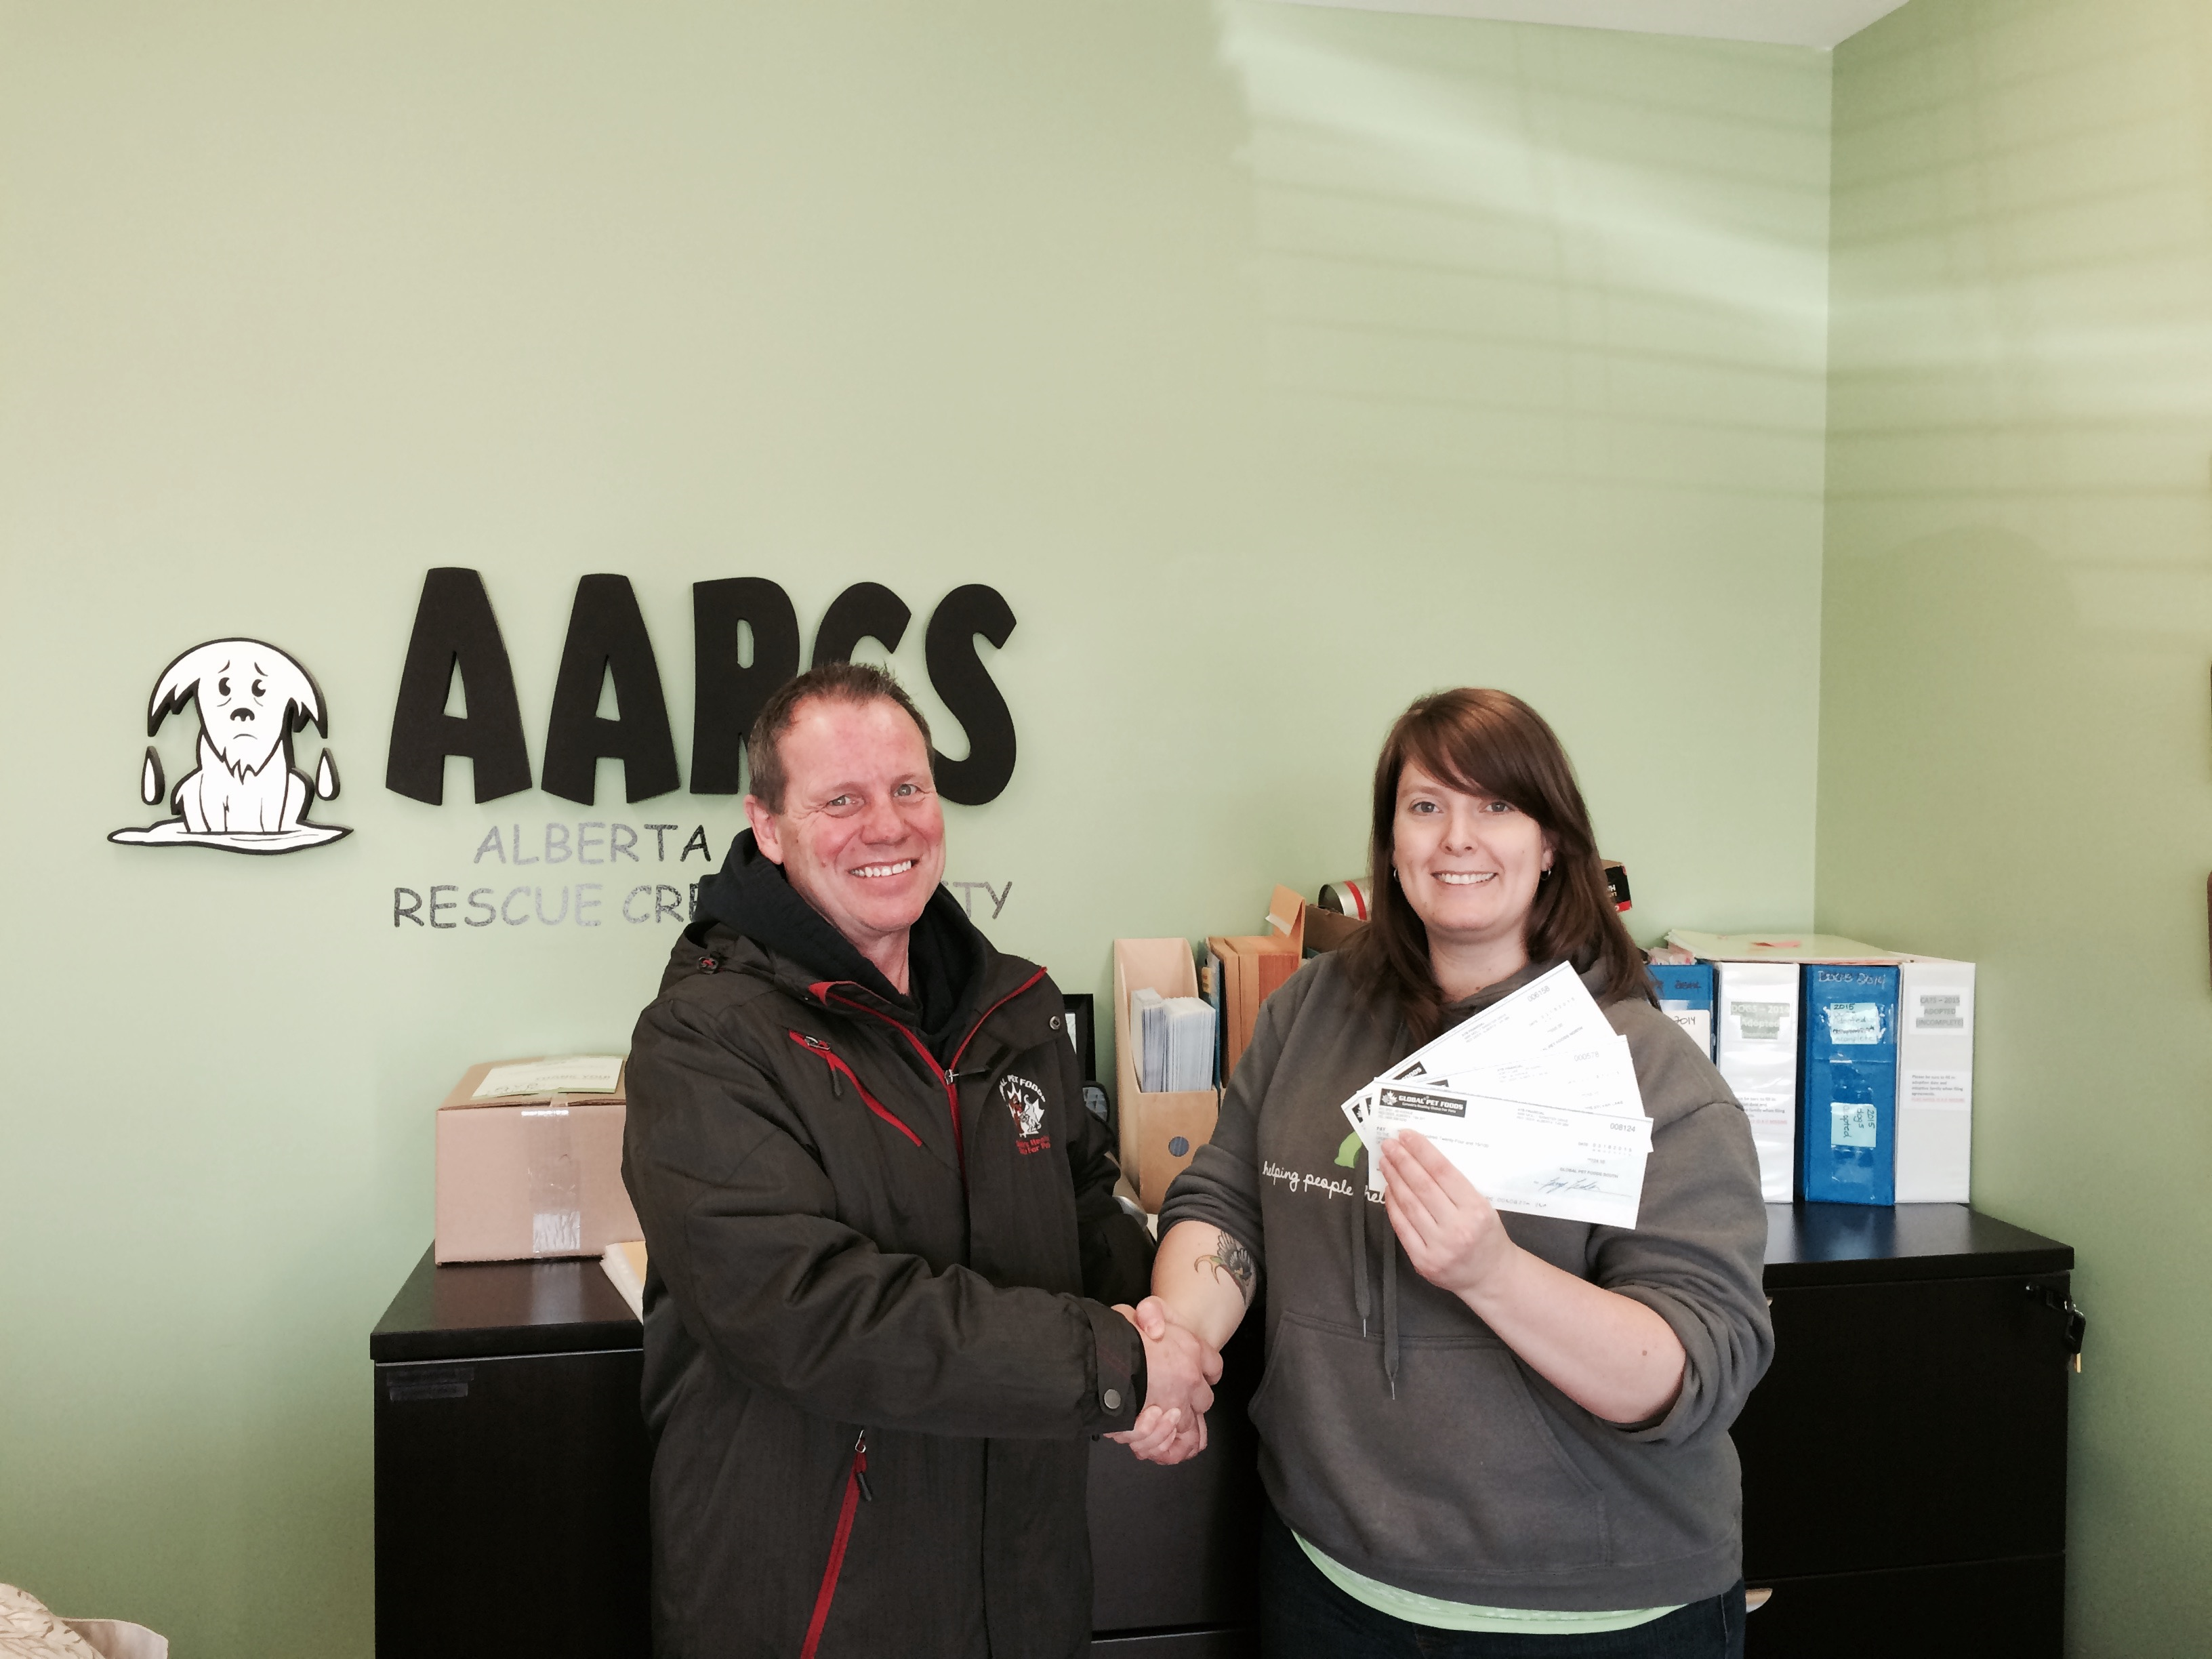 Pictured In This Photo Is Katie From The Alberta Animal Rescue Crew Society Larry Leeder The Owner Operator Of Th Animal Nutrition Healthy Pets